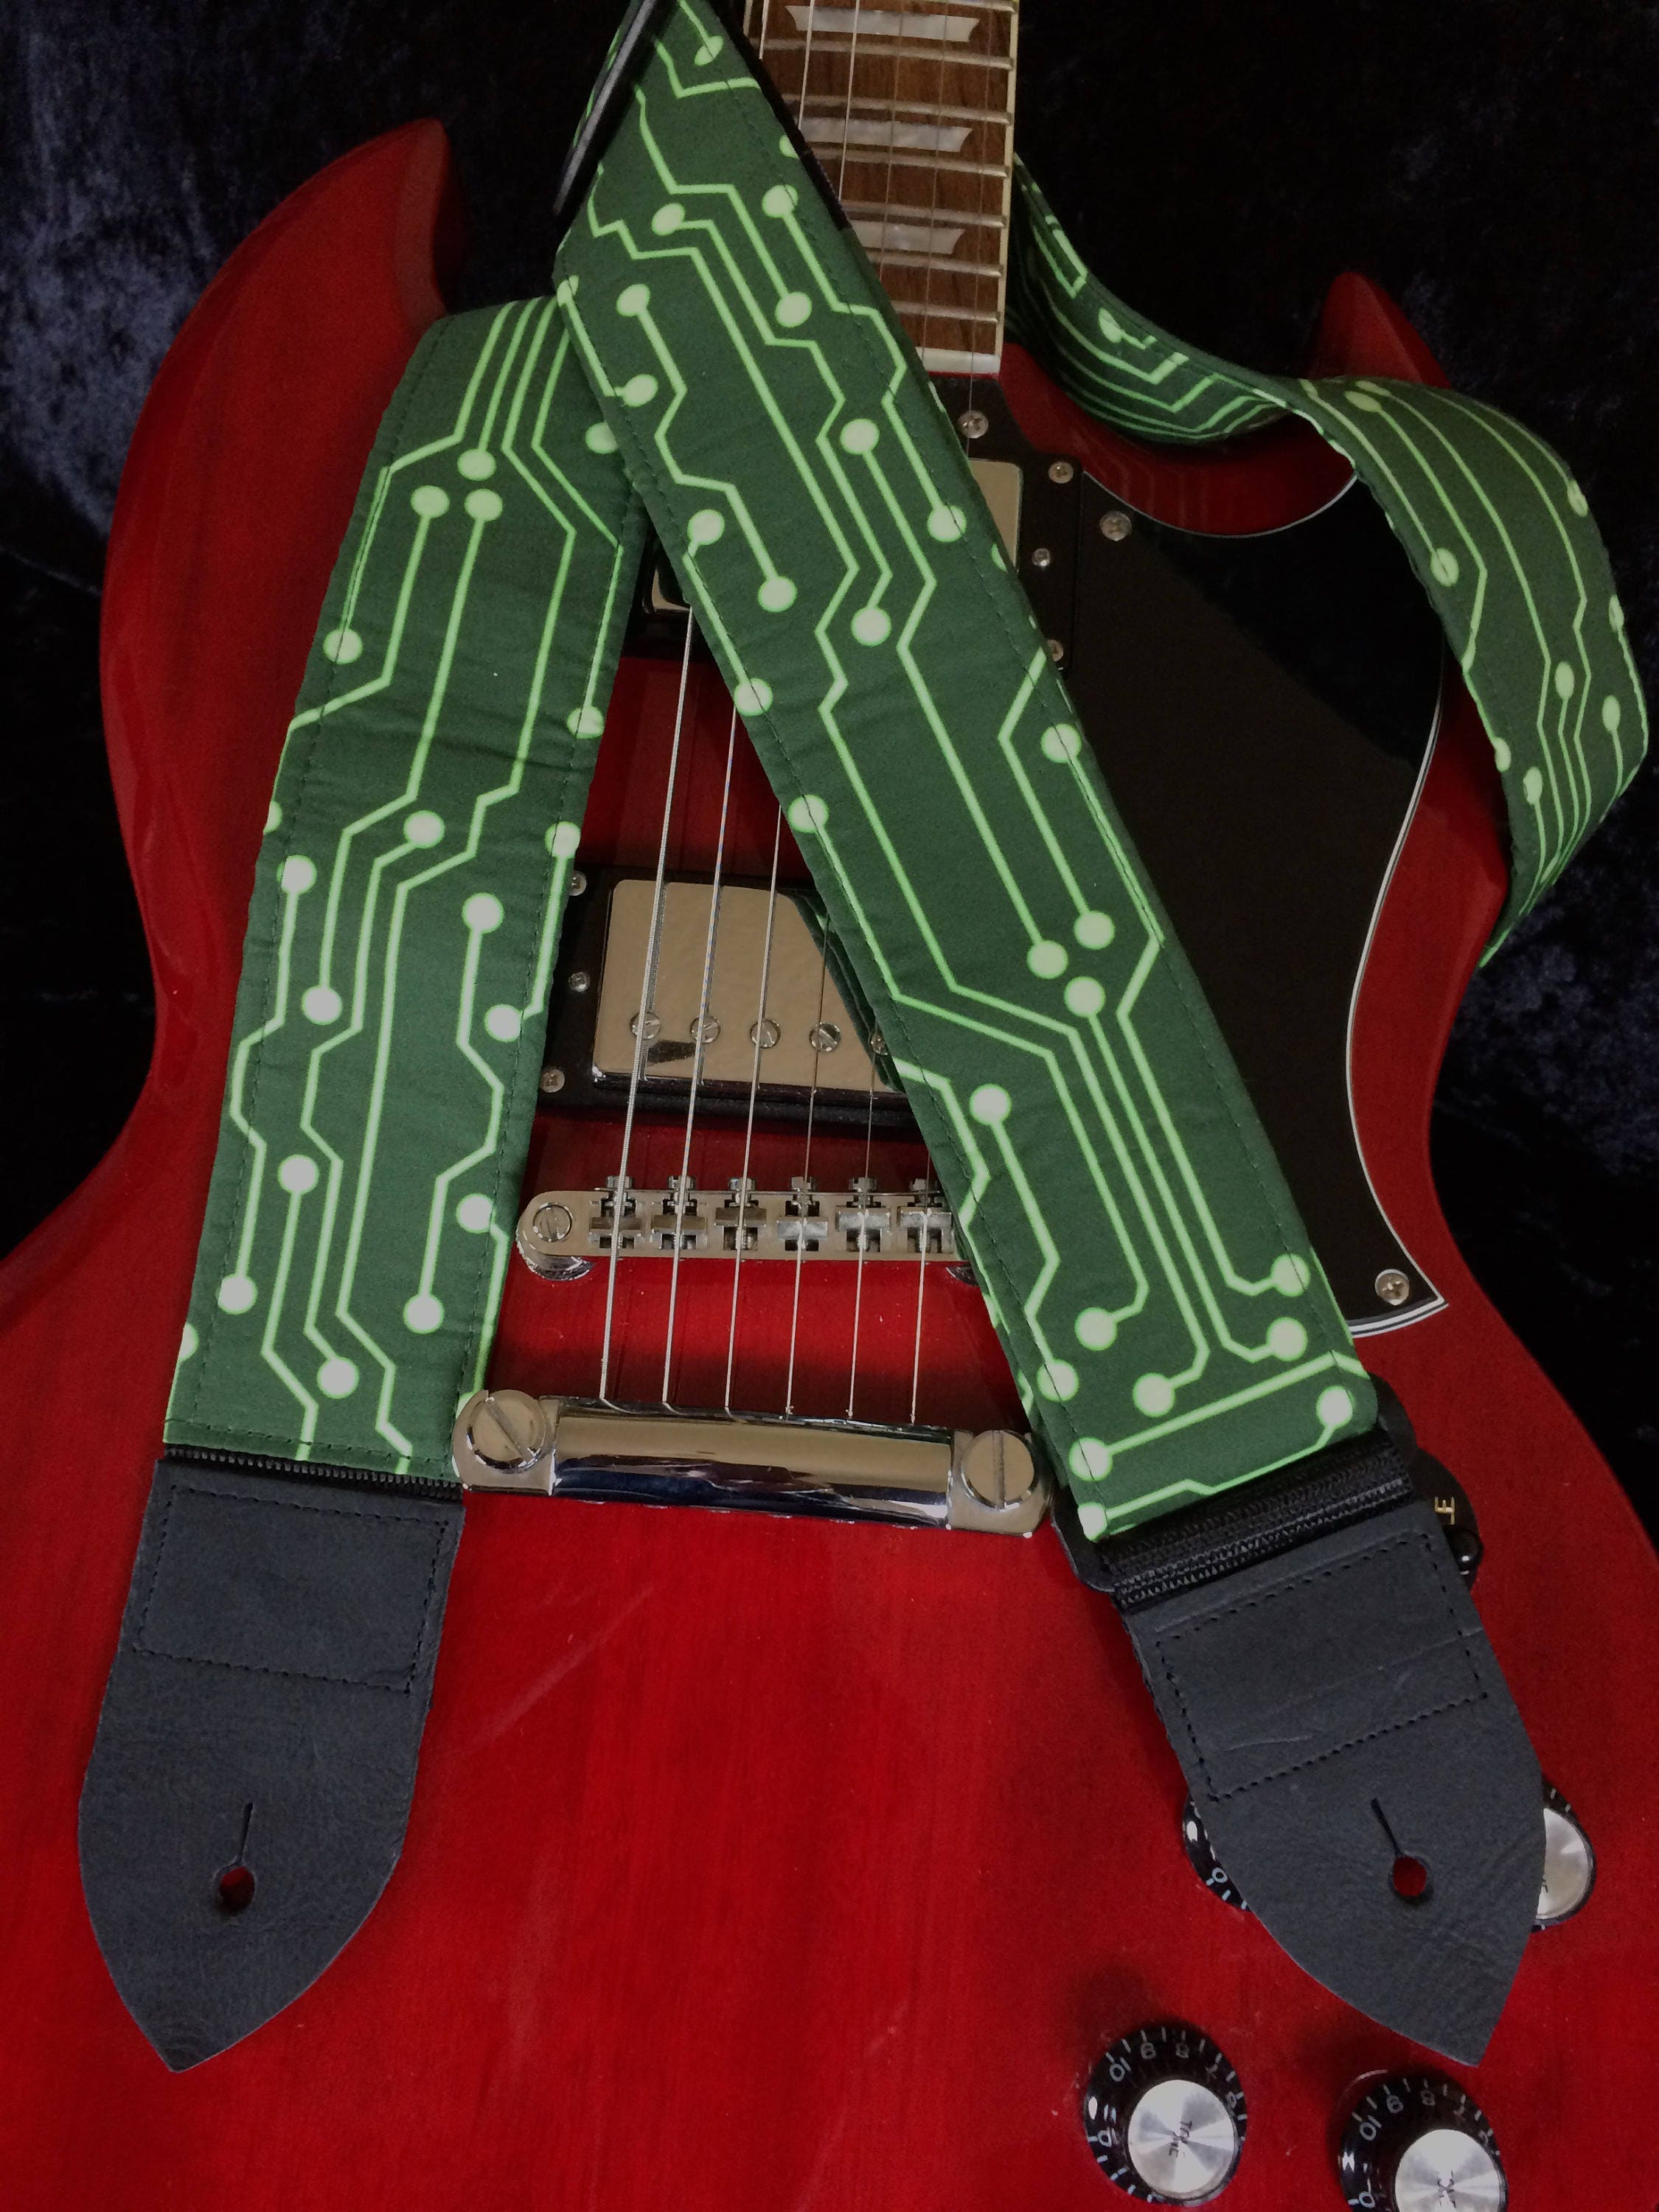 Circuit Board Guitar Strap Techno Lime Pcb Traces On Dark Green Trace Background Futuristic Cyberpunk Guitarist Gift Electronics Geekery